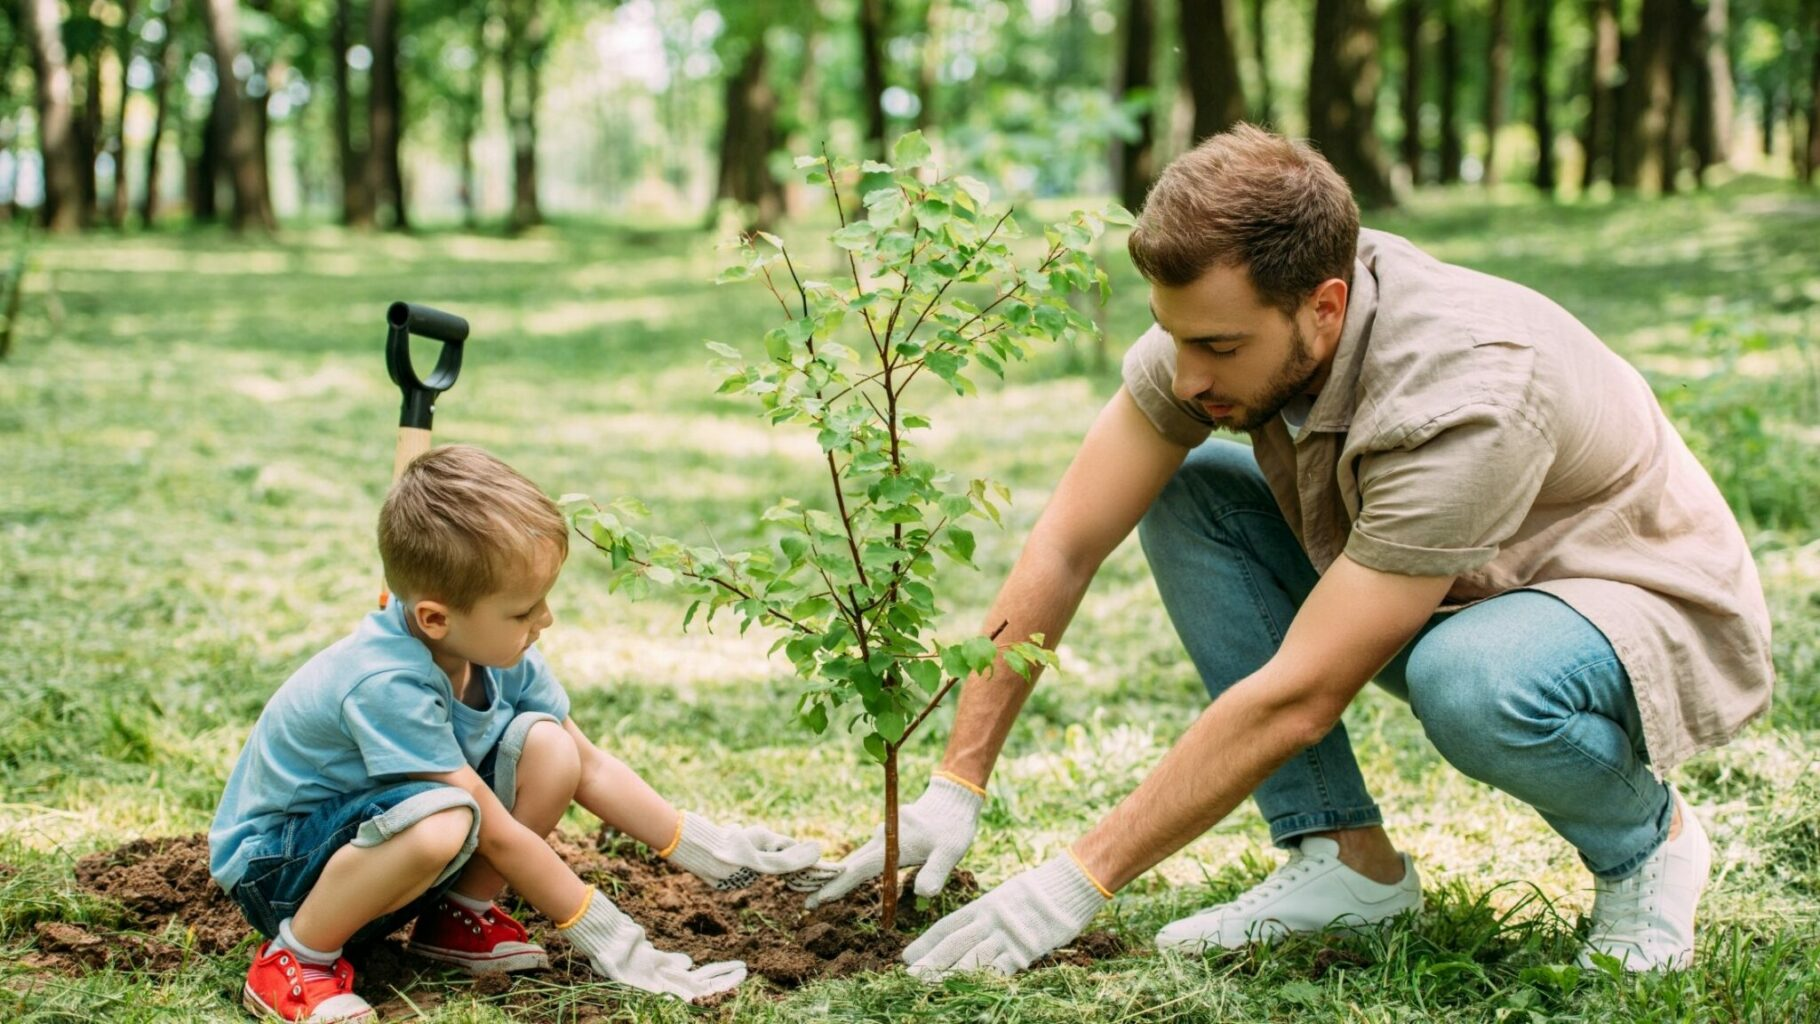 Father and Son Planting a Young Tree Together